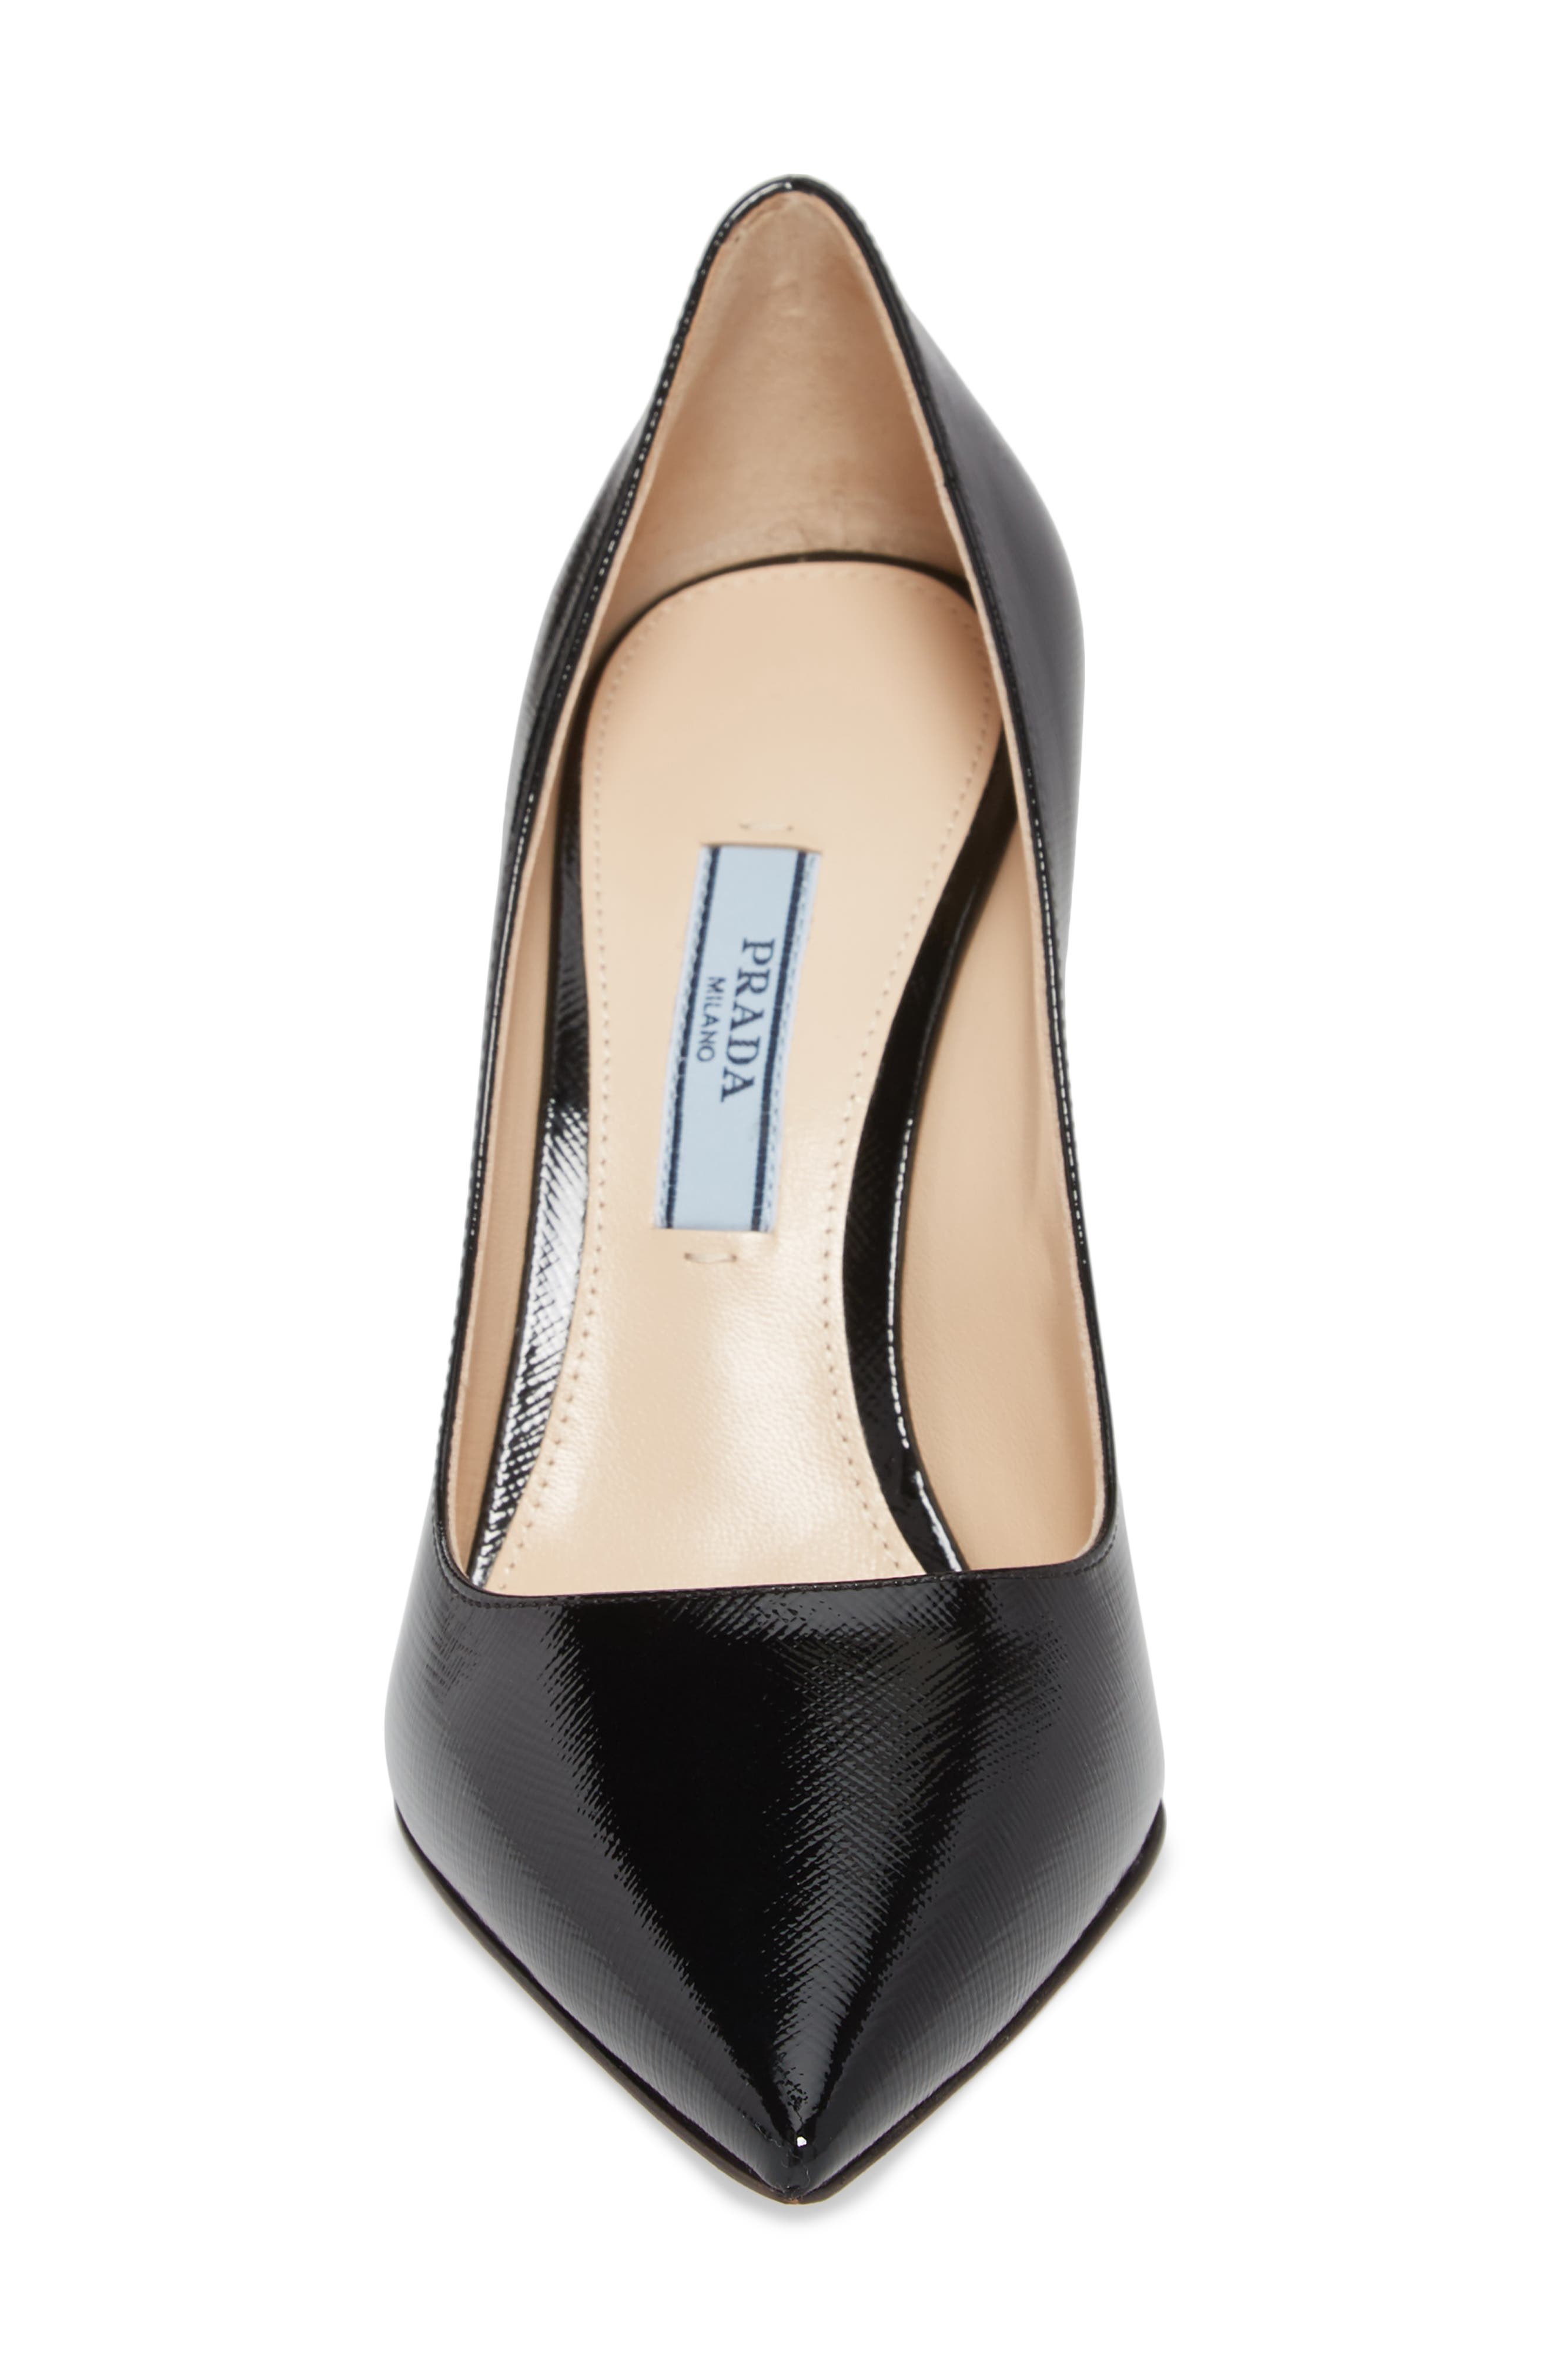 PRADA, Pointy Toe Pump, Alternate thumbnail 4, color, BLACK